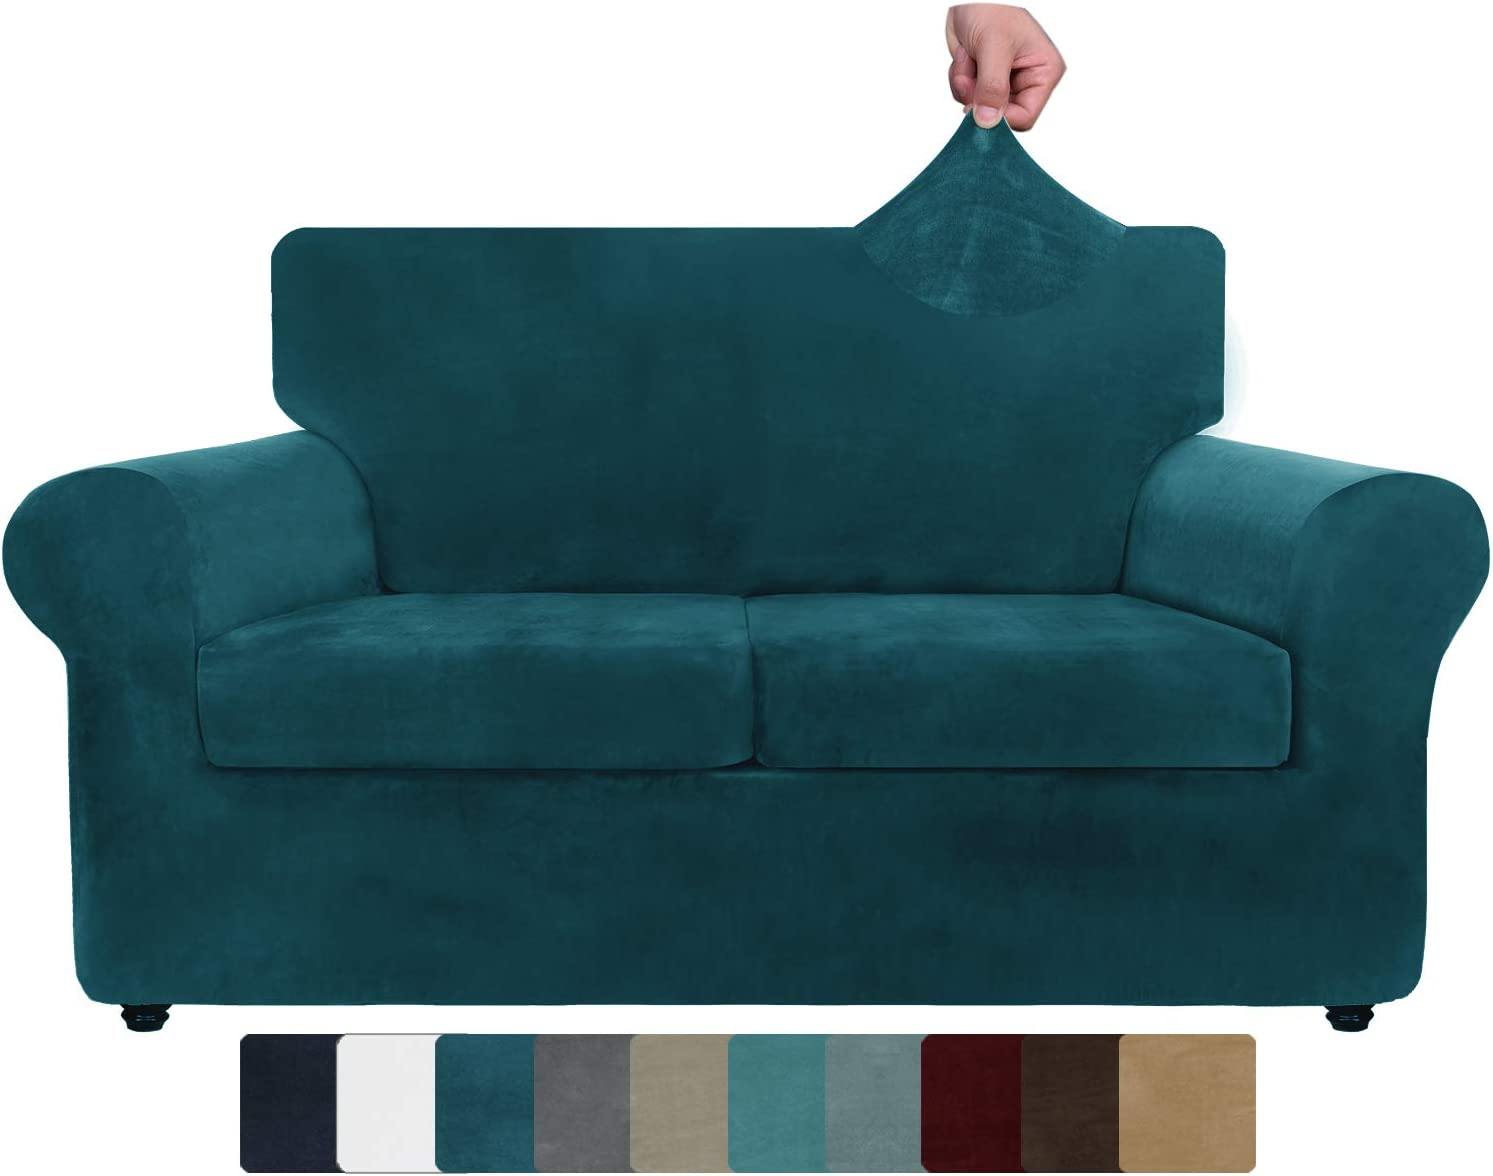 ZNSAYOTX Luxury 40% At the price of surprise OFF Cheap Sale Velvet Couch Cover 4 Sofa Piece f Covers Stretch